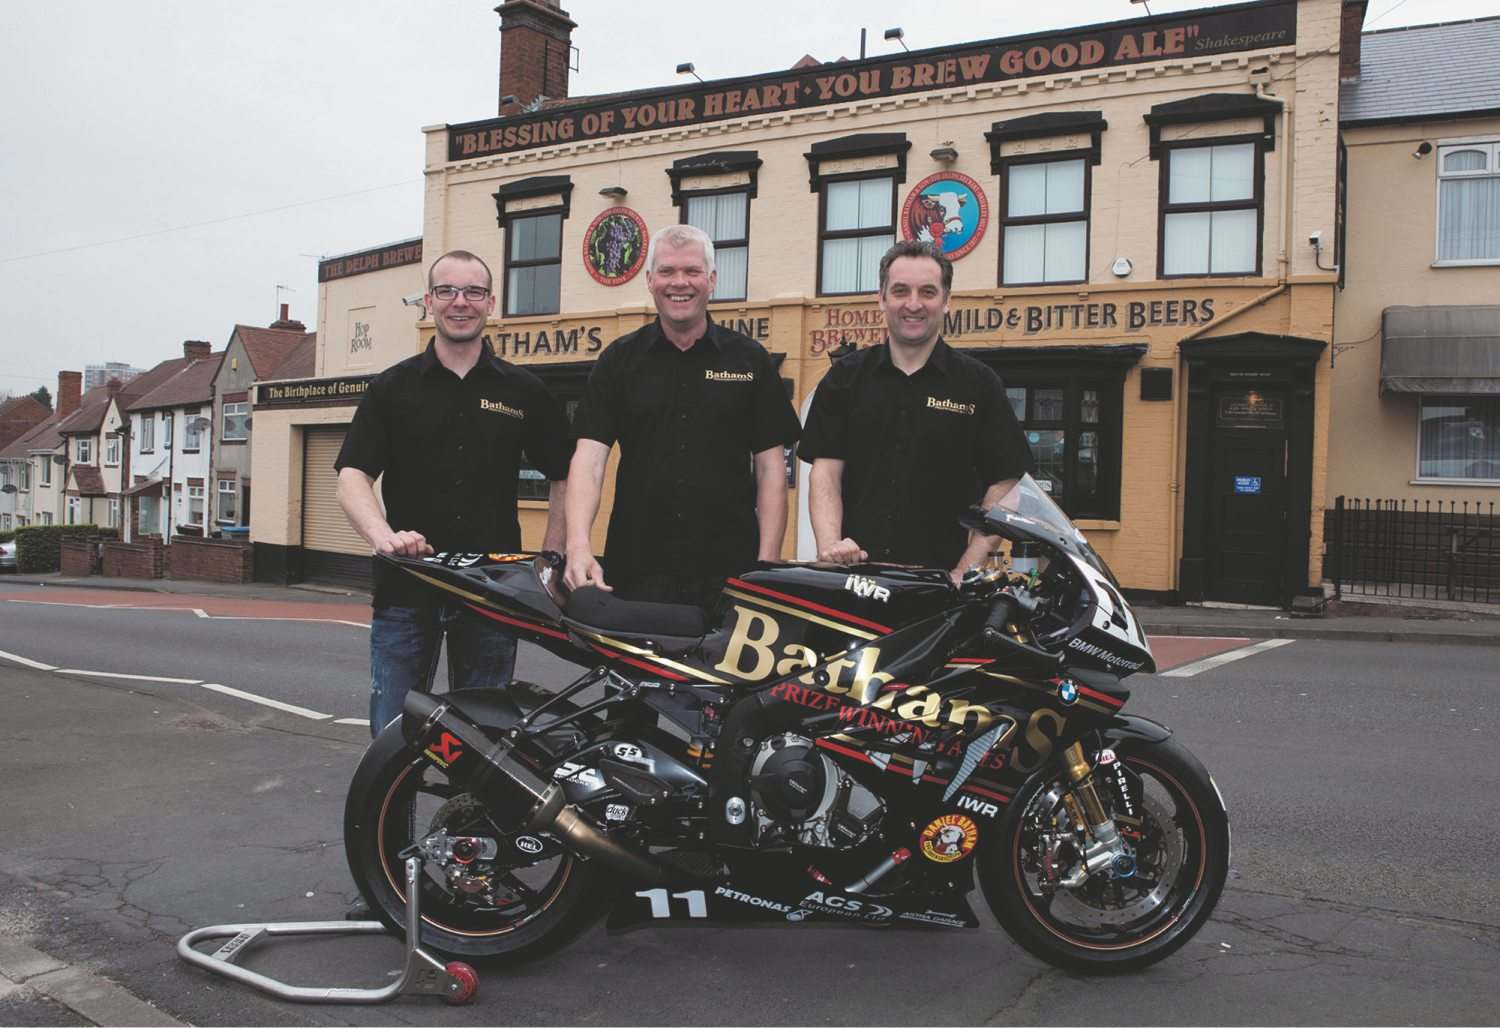 Bathams-BMW-reveal-line-up-of-Rutter-and-Muff